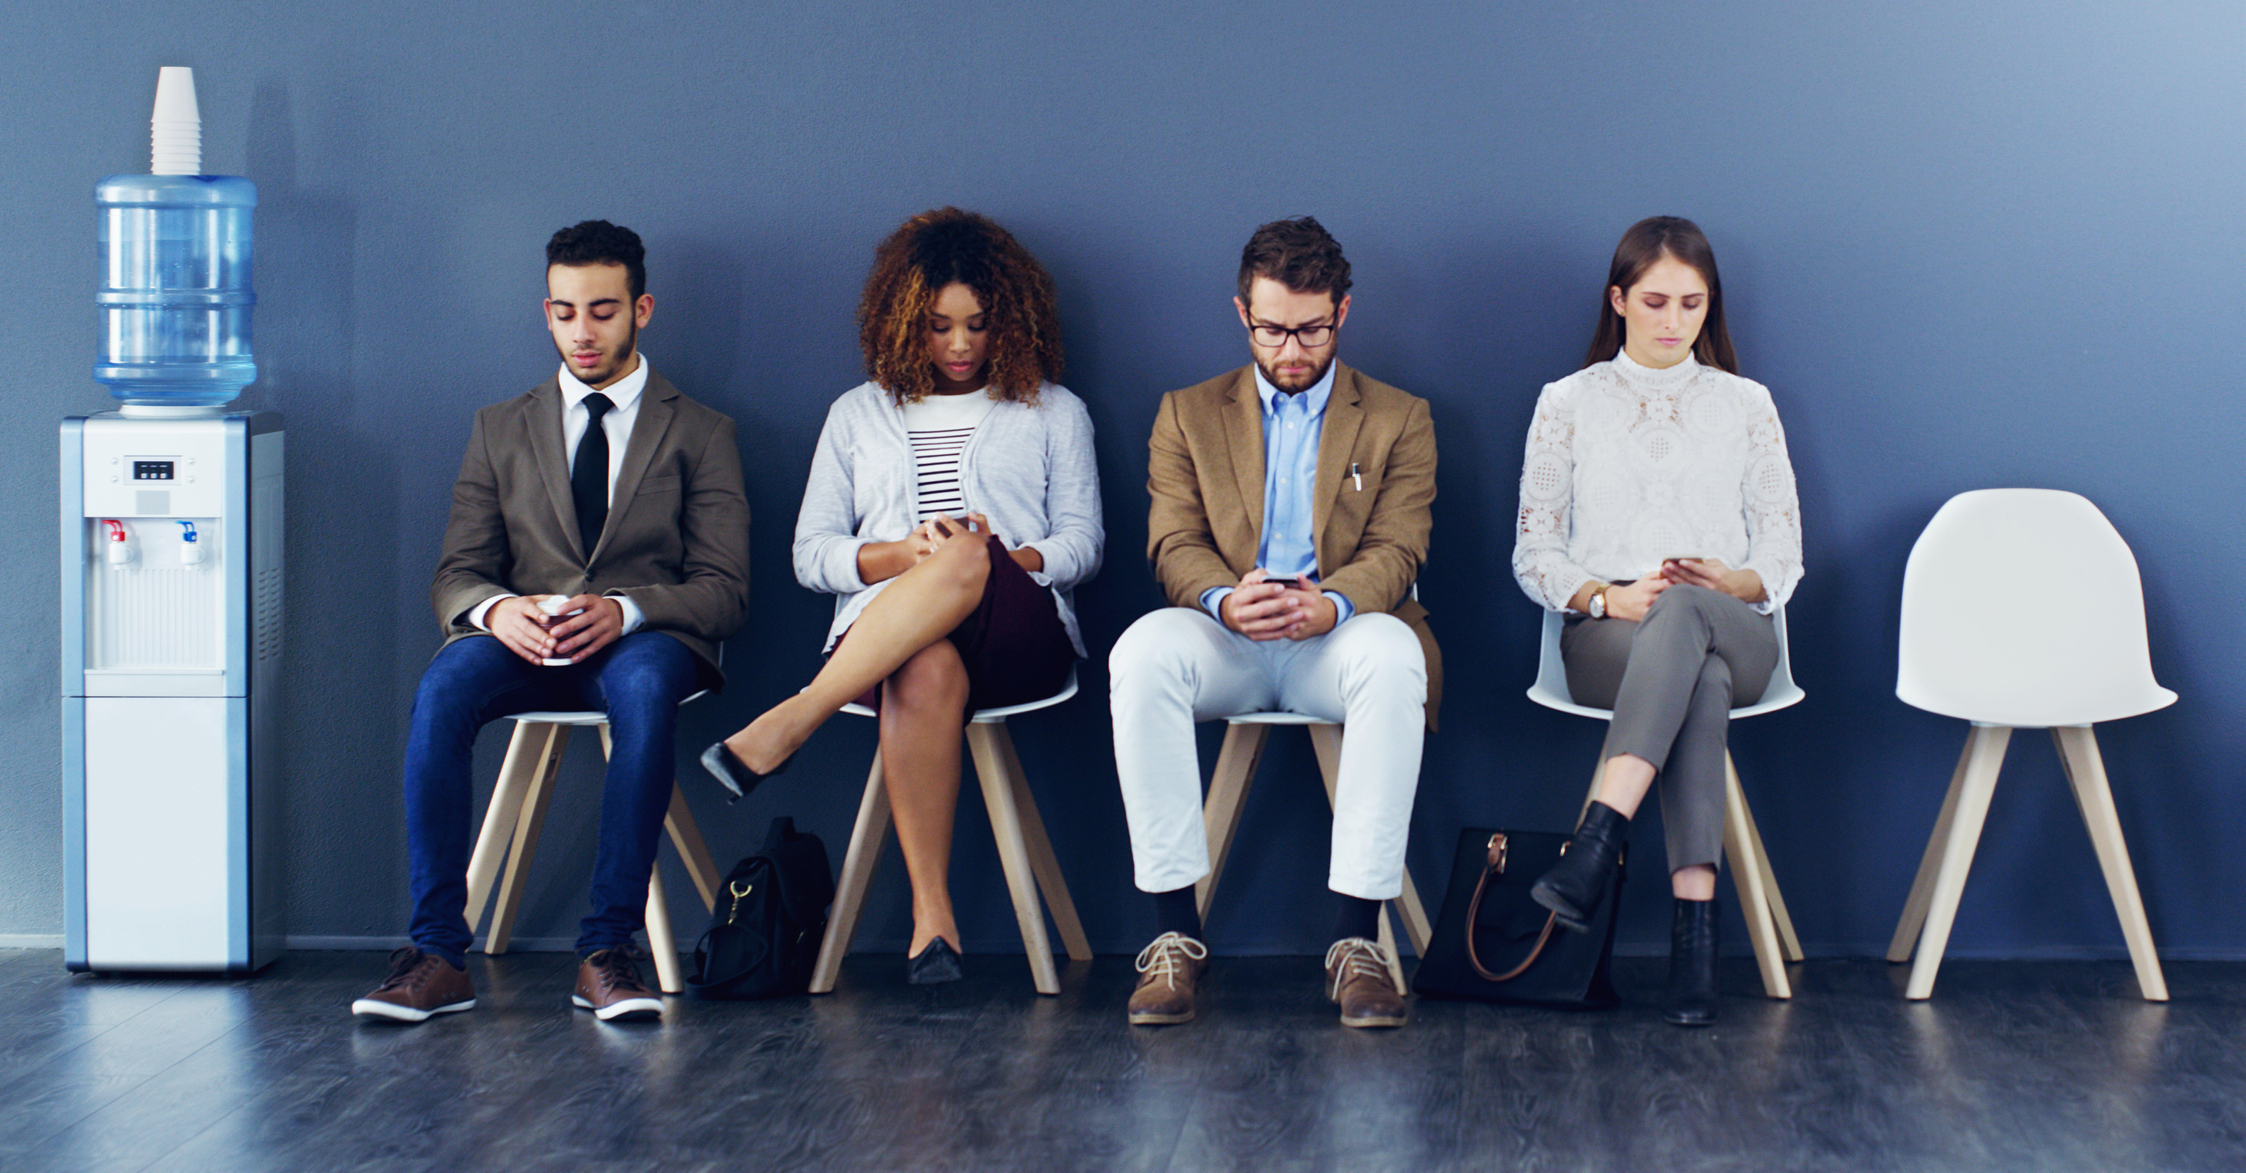 Hiring New Staff Members: How To Do It So You Don't Regret